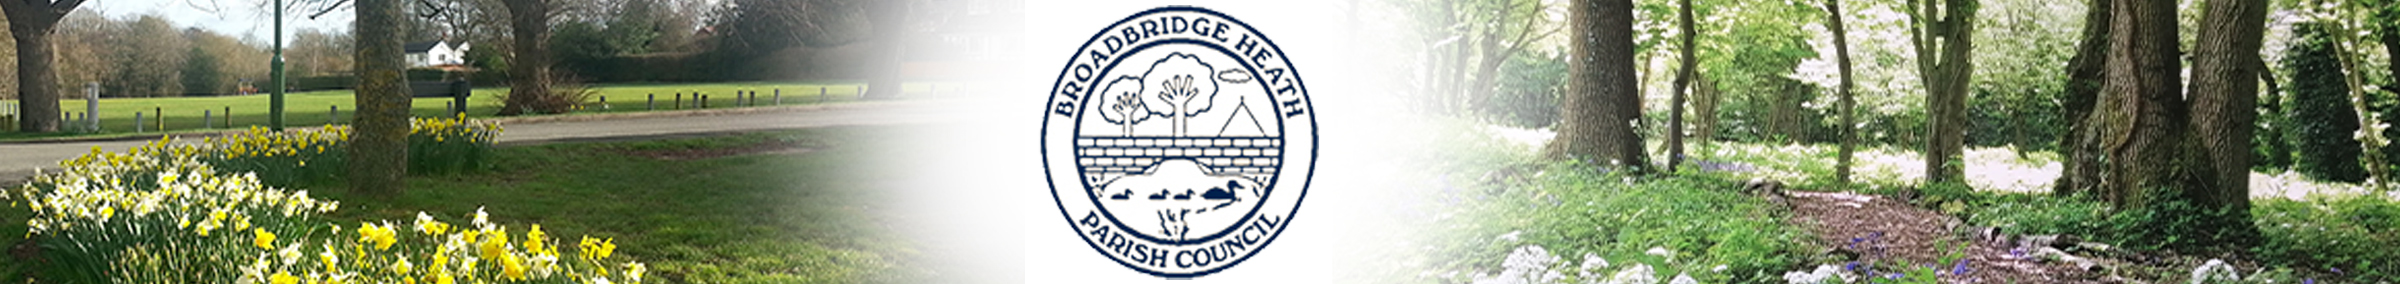 Header Image for Broadbridge Heath Parish Council